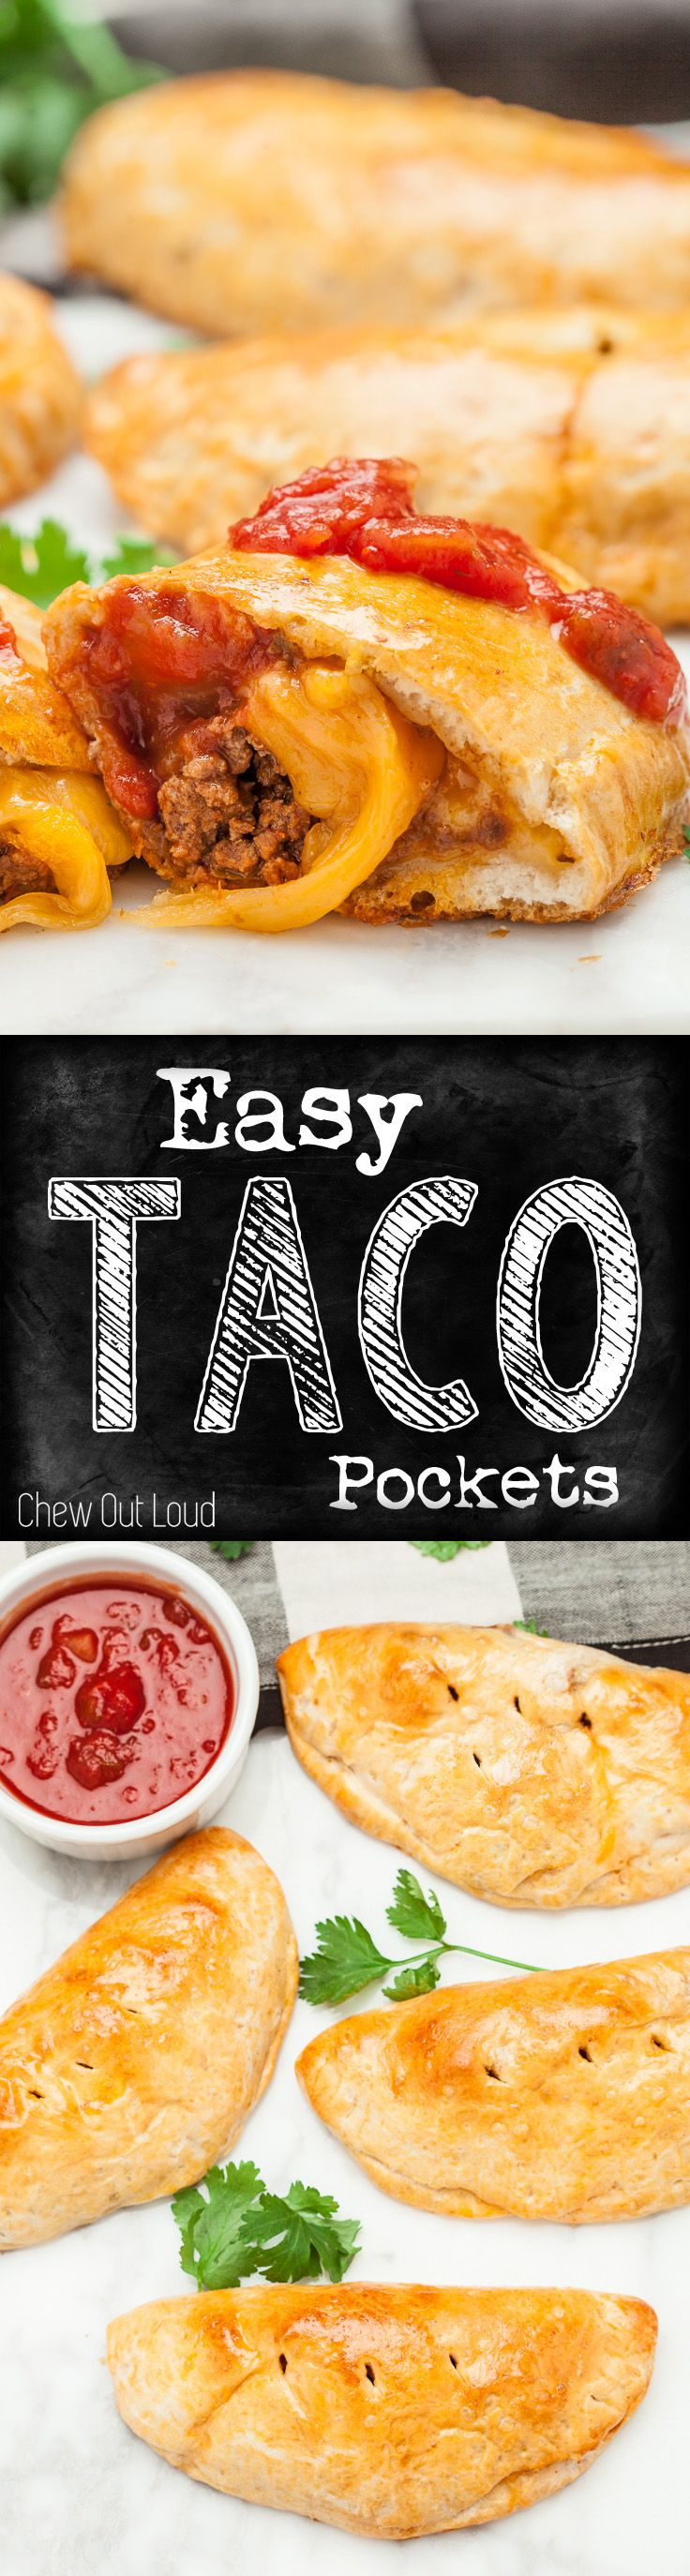 Easy, Yummy, and a Family Favorite weeknight meal! Bring on the hungry smiles. #mexican #taco #dinner